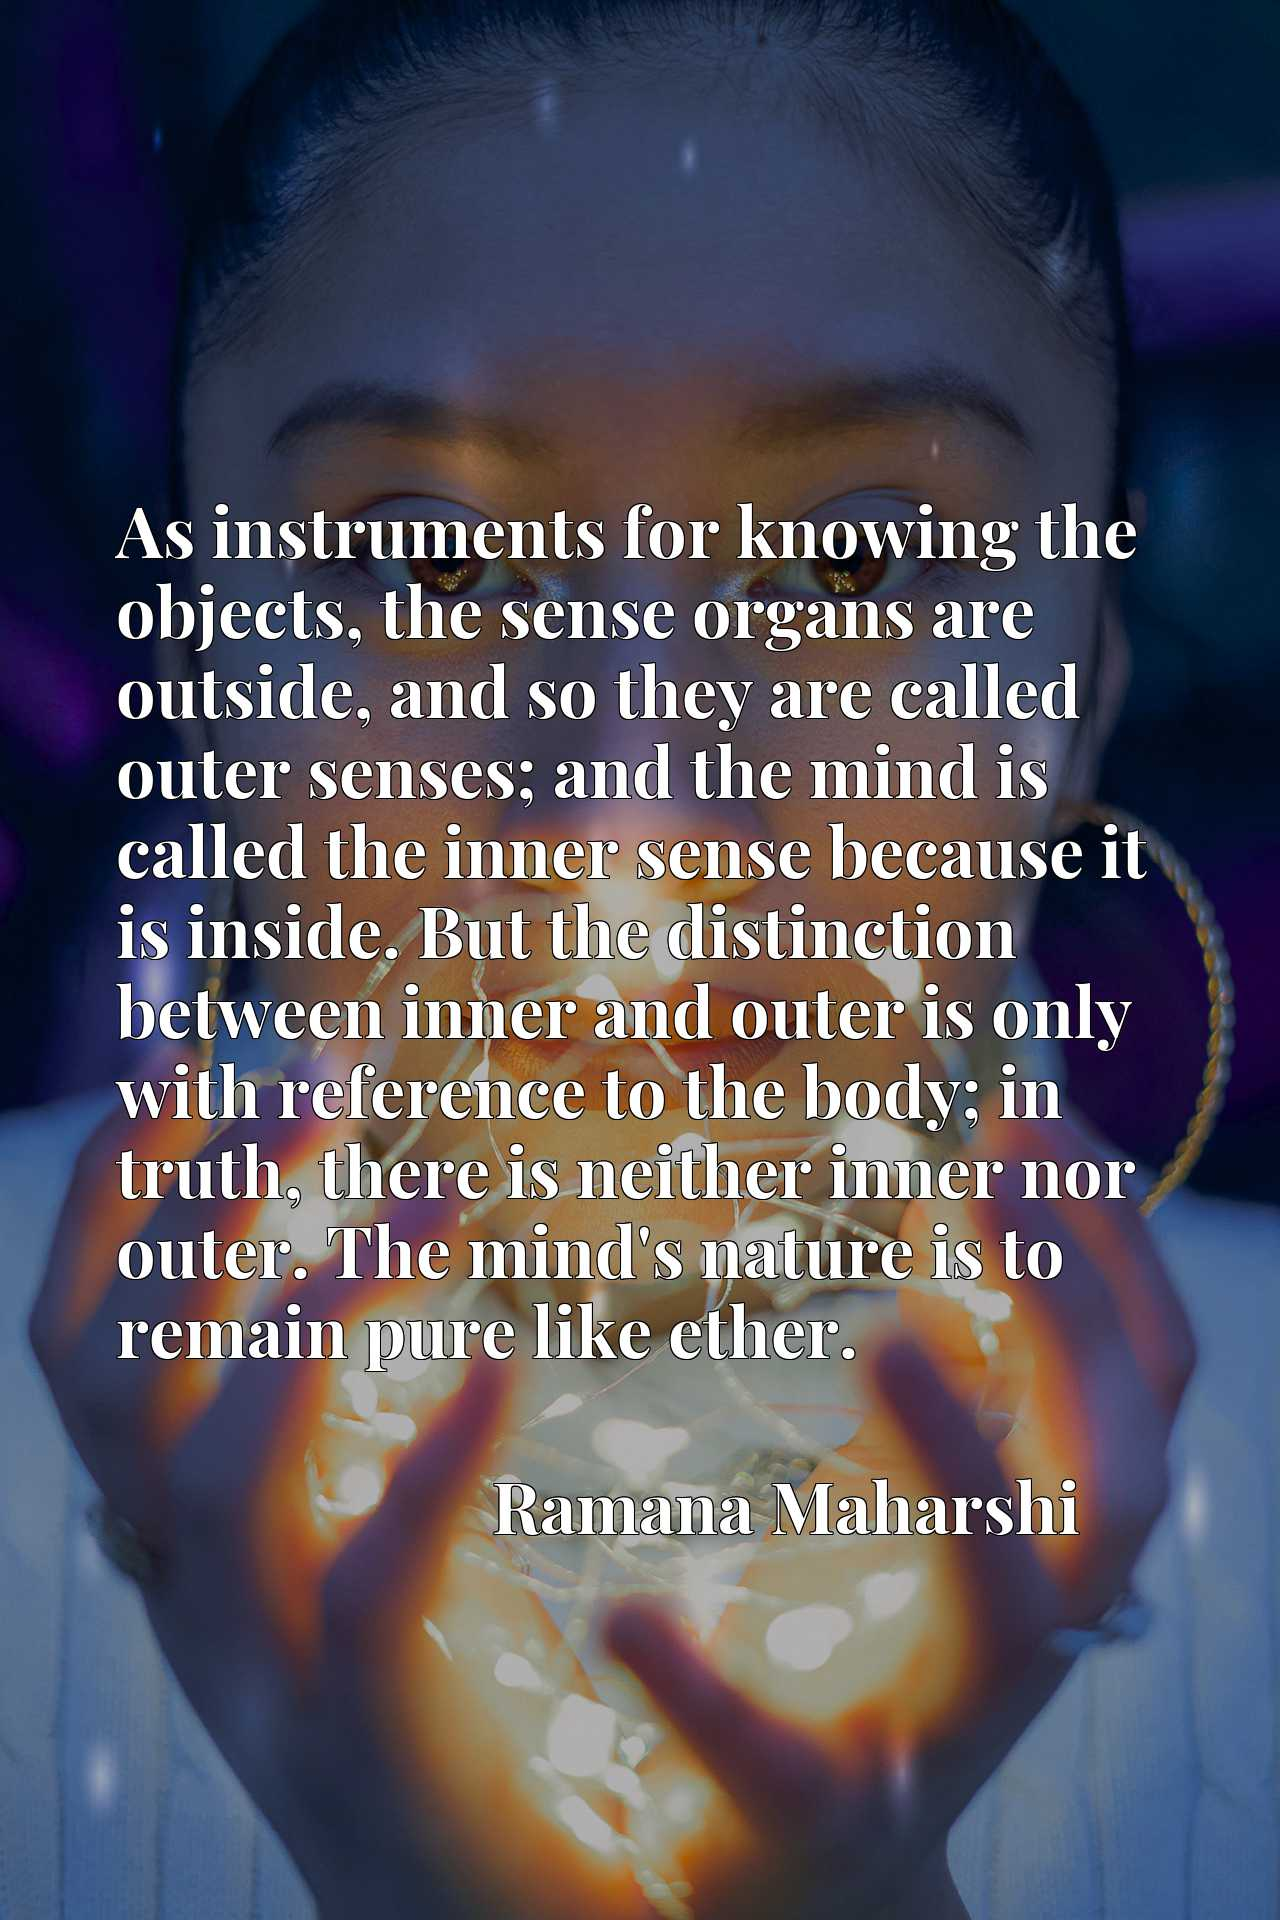 As instruments for knowing the objects, the sense organs are outside, and so they are called outer senses; and the mind is called the inner sense because it is inside. But the distinction between inner and outer is only with reference to the body; in truth, there is neither inner nor outer. The mind's nature is to remain pure like ether.